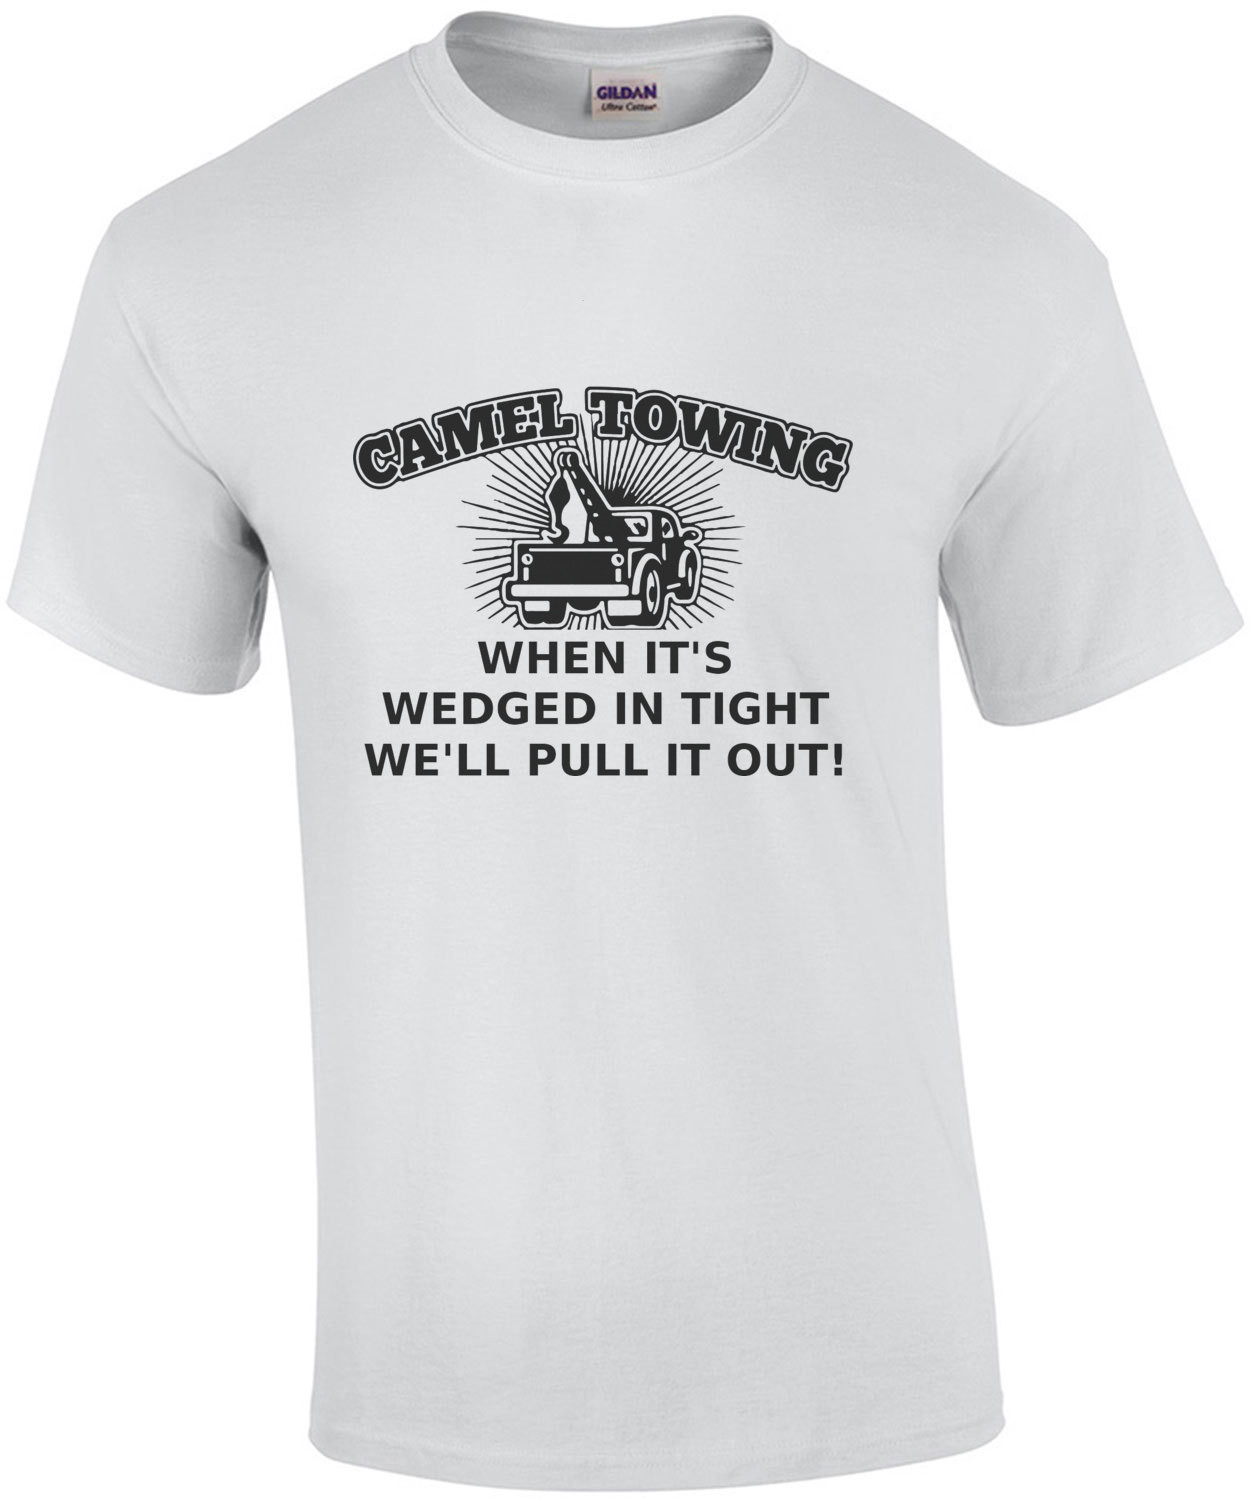 Camel Towing - When it's wedged in tight we'll pull you out! T-Shirt